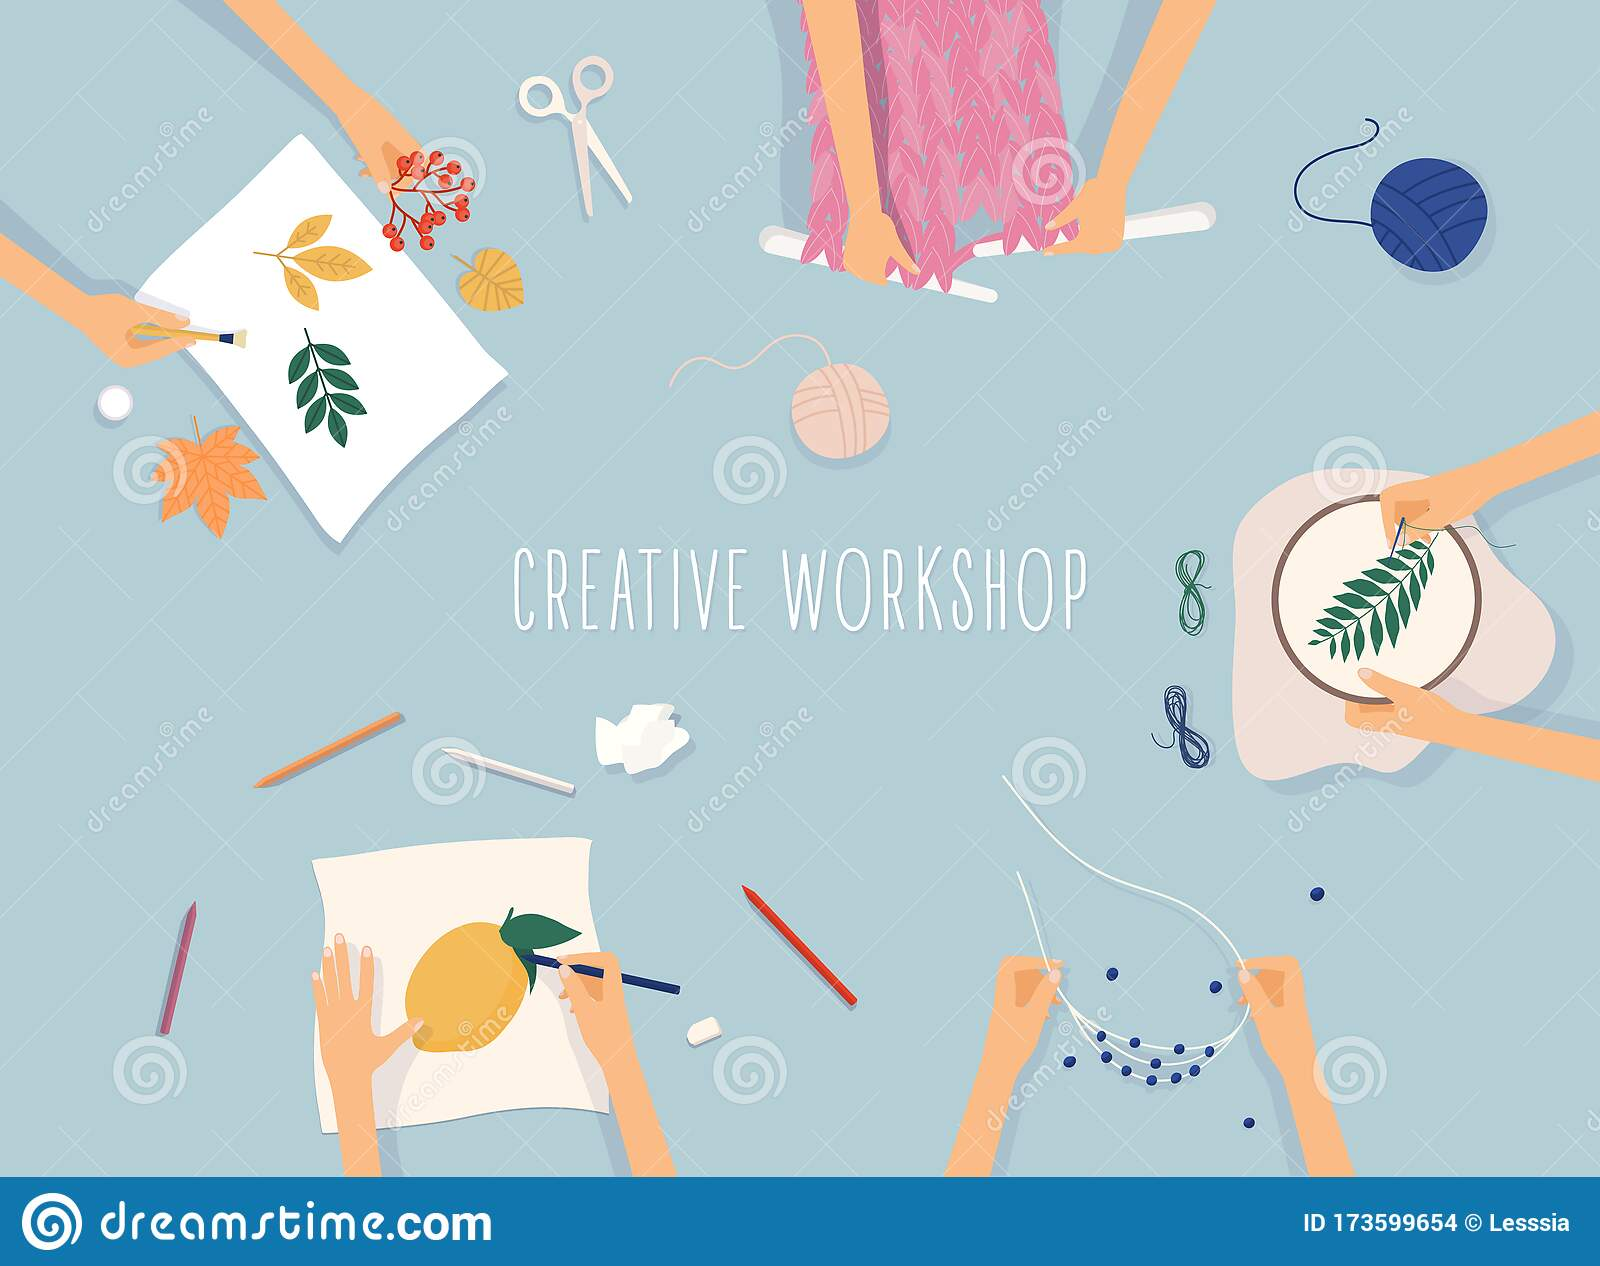 Creative Handmade Workshop Banner Drawing Beadwork Embroidering Knitting Scrapbooking Stock Vector Illustration Of Colorful Design 173599654